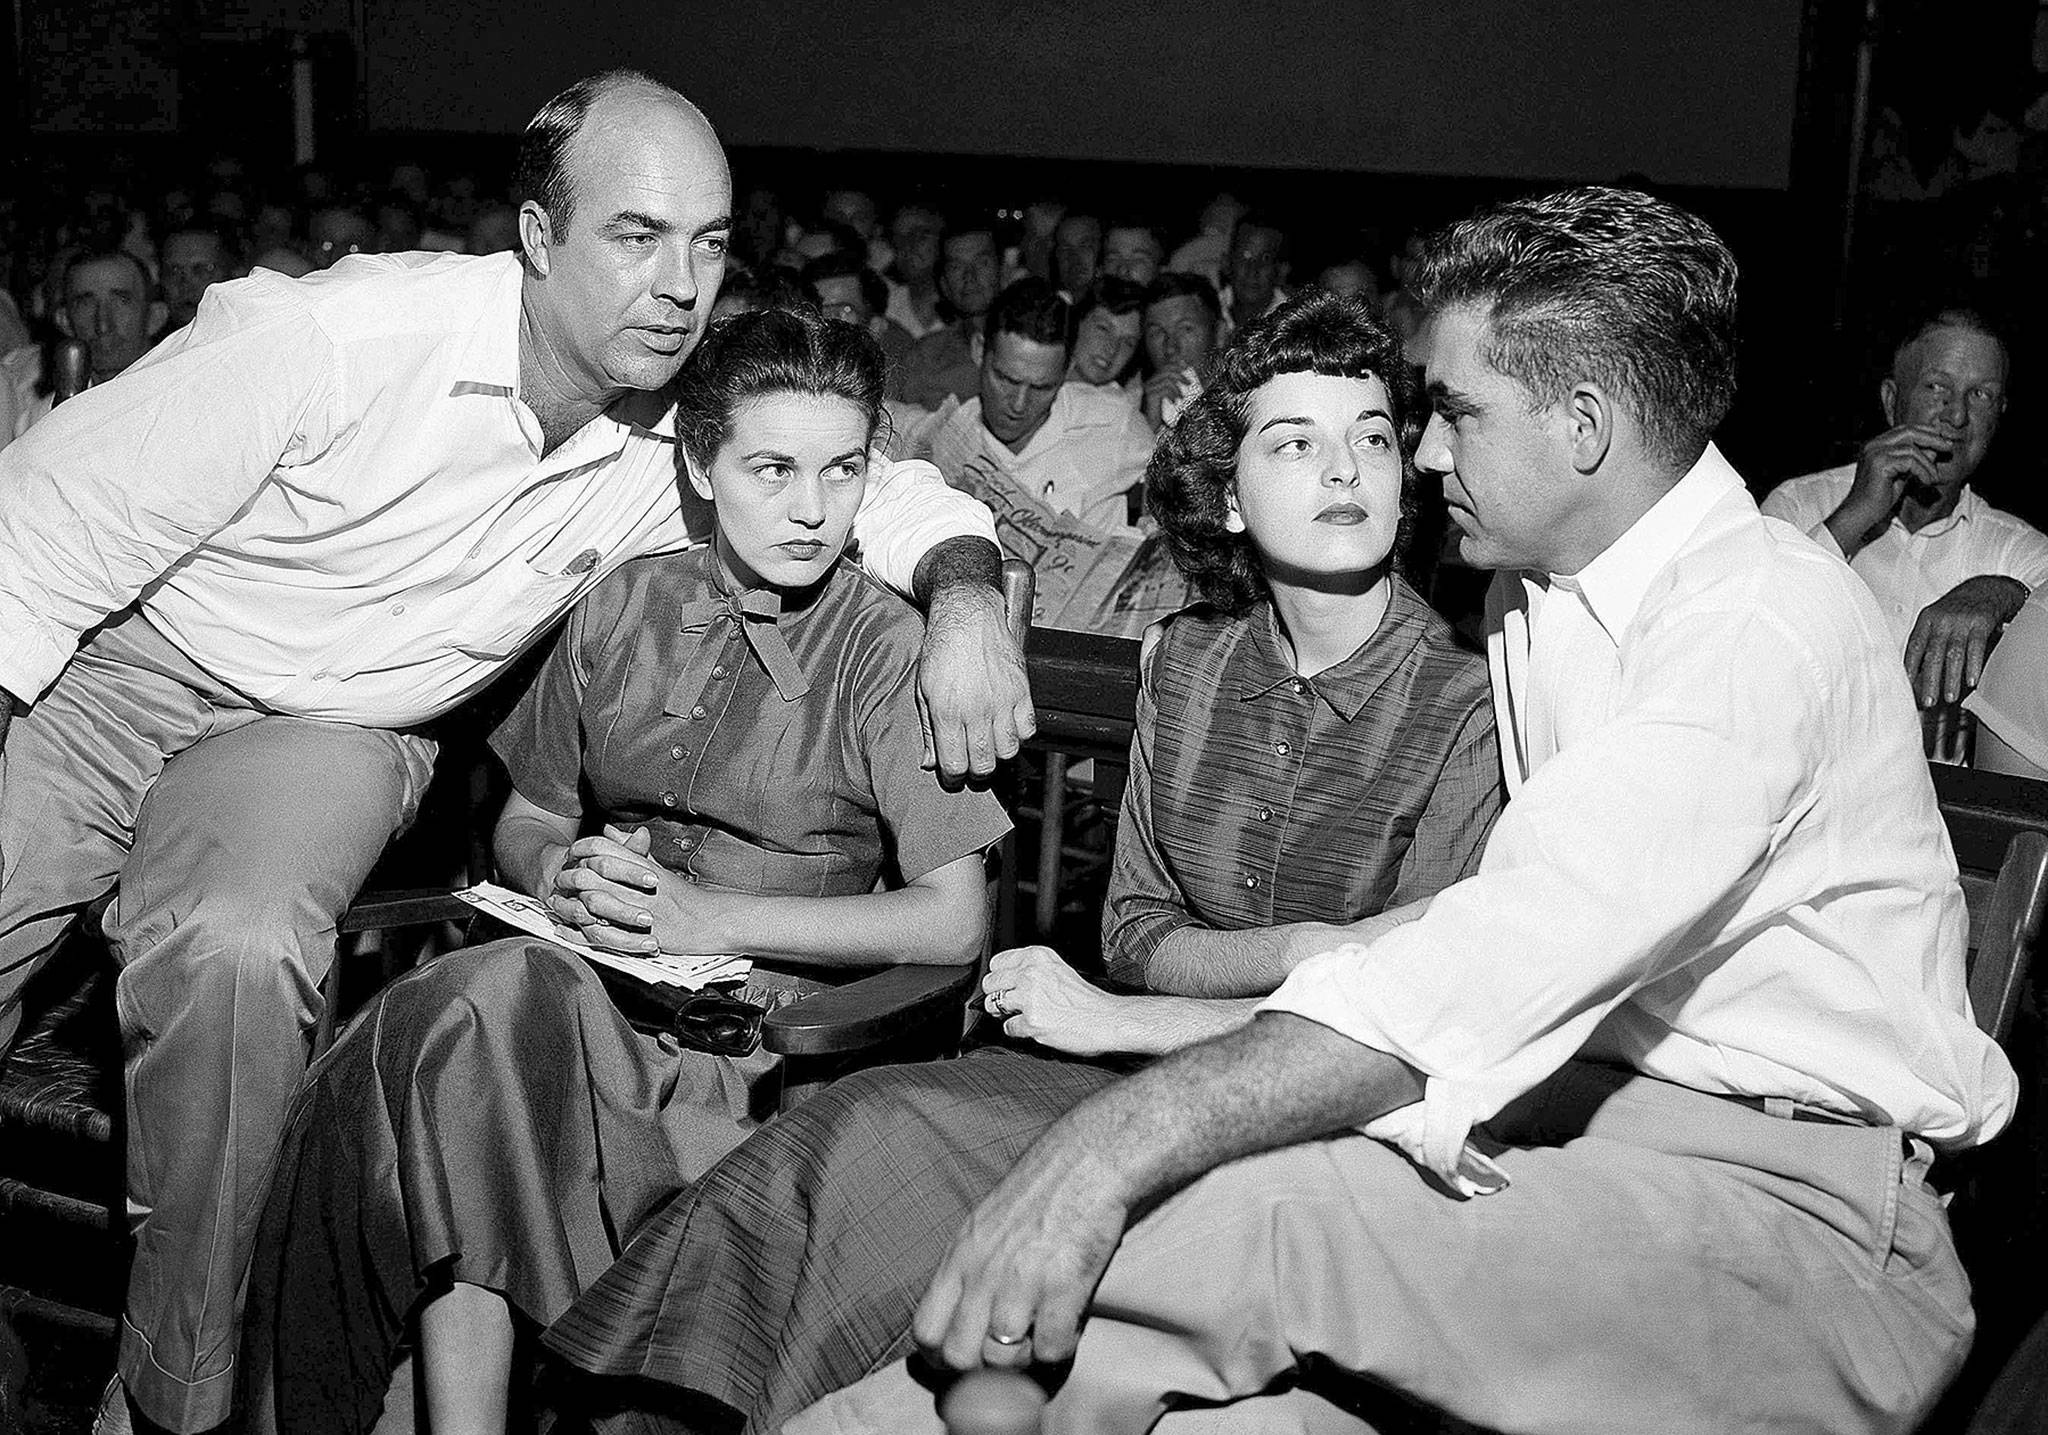 "From left: J.W. Milam, his wife, Carolyn Bryant and her husband, Roy Bryant, in a courtroom in Sumner, Mississippi, on Sept. 23, 1955. Roy Bryant and his half-brother, Milam, were charged with murder but acquitted in the kidnap-torture slaying of 14-year-old black teen Emmett Till after he allegedly whistled at Carolyn Bryant. The men later confessed in a magazine interview but weren't retried; both are now dead. Citing ""new information,"" the U.S. Justice Department has reopened the investigation into Till's death. (AP Photo, File)"